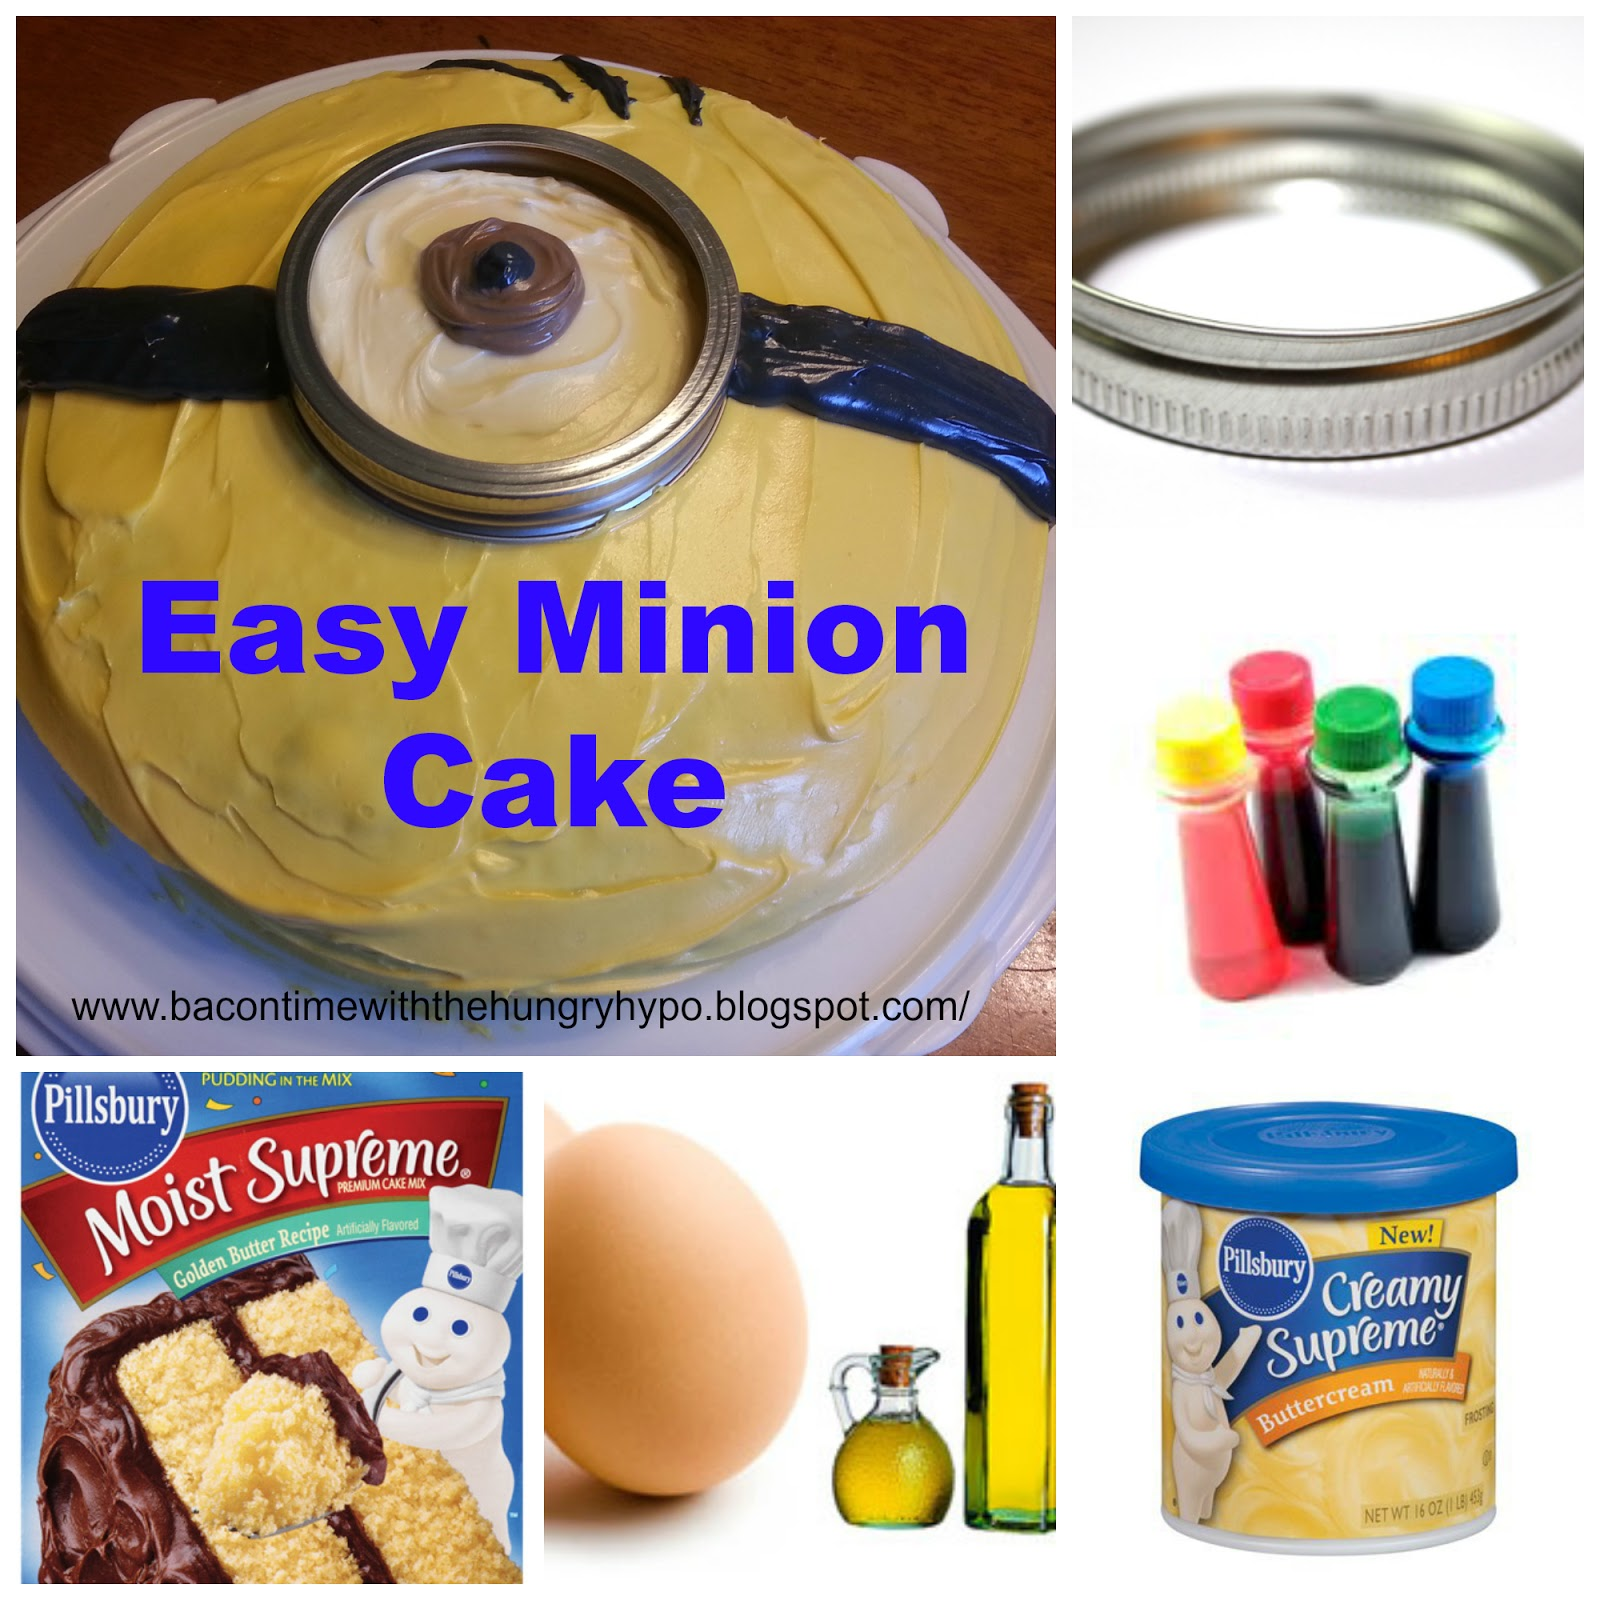 Easy Minion Cake Images : Bacon Time With The Hungry Hypo: Easy Minion Cake and ...